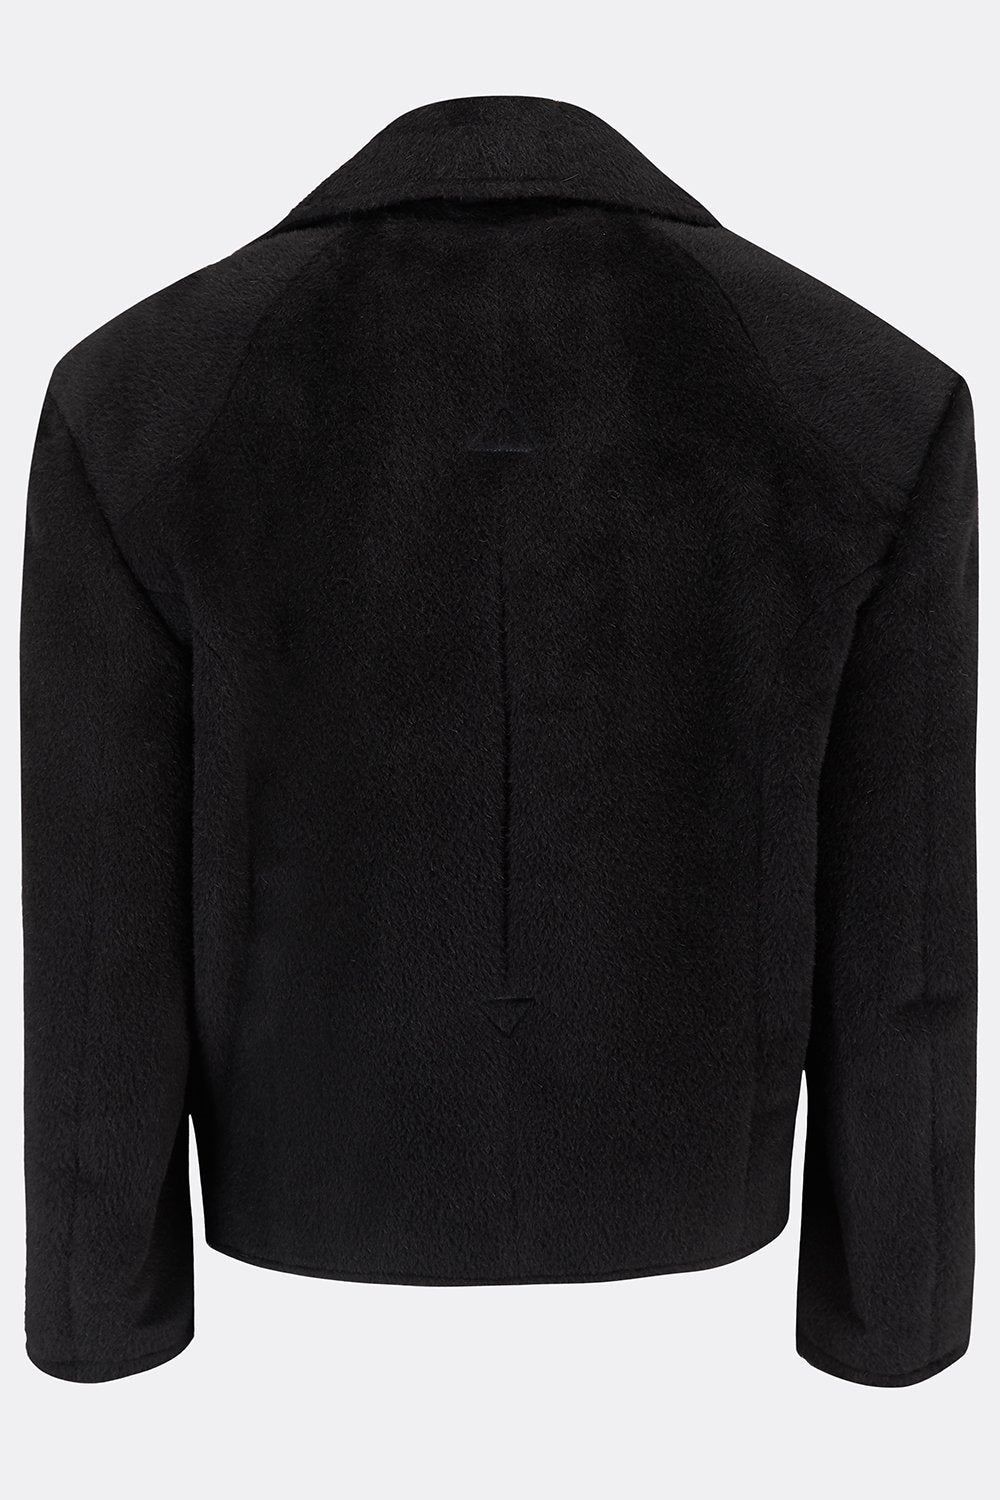 HENCHMAN JACKET IN BLACK ALPACA-menswear-A Child Of The Jago